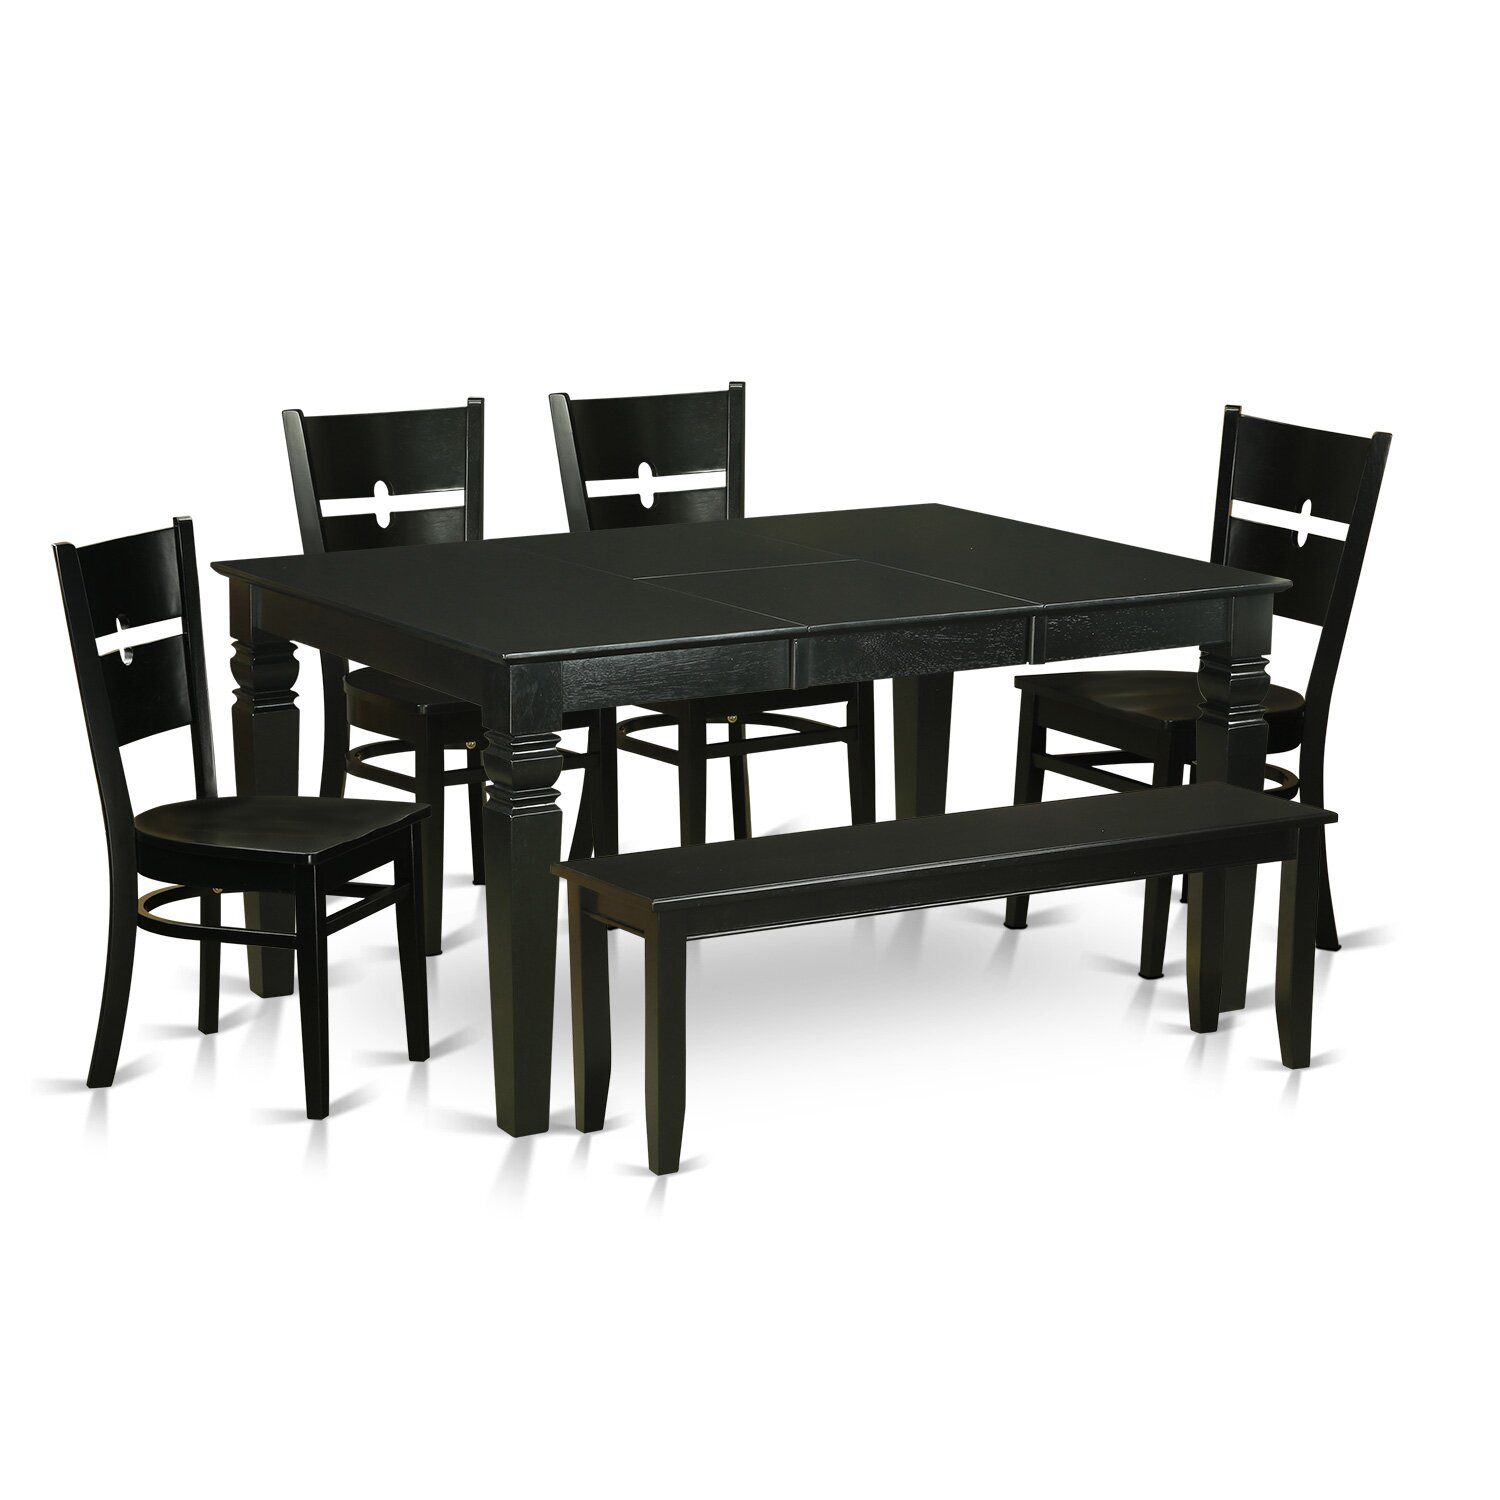 Wooden importers weston 6 piece dining set wayfair for Small kitchen table for 4